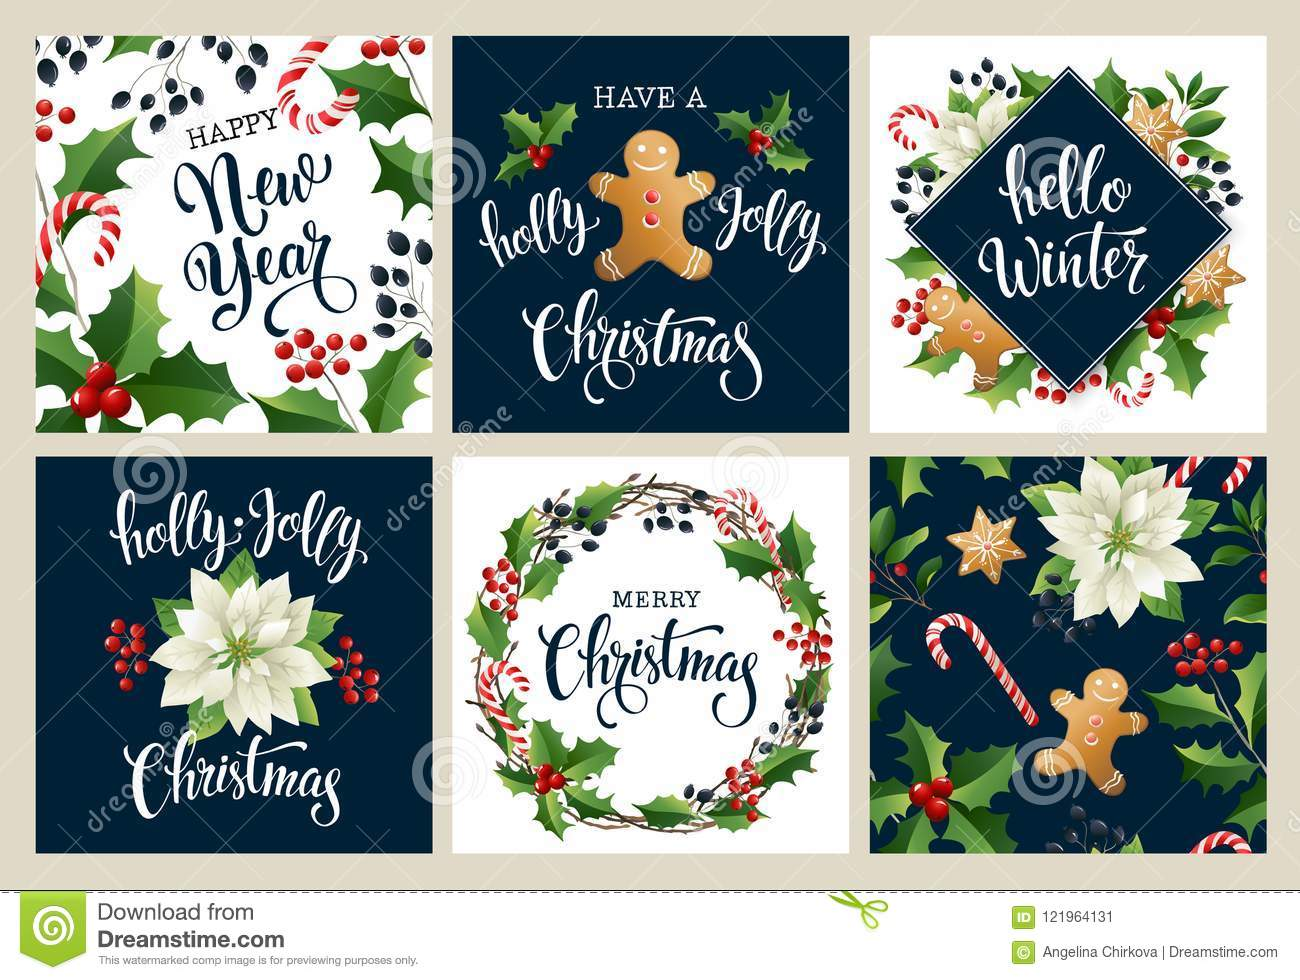 happy new year 2019 merry christmas white and black collors design for poster